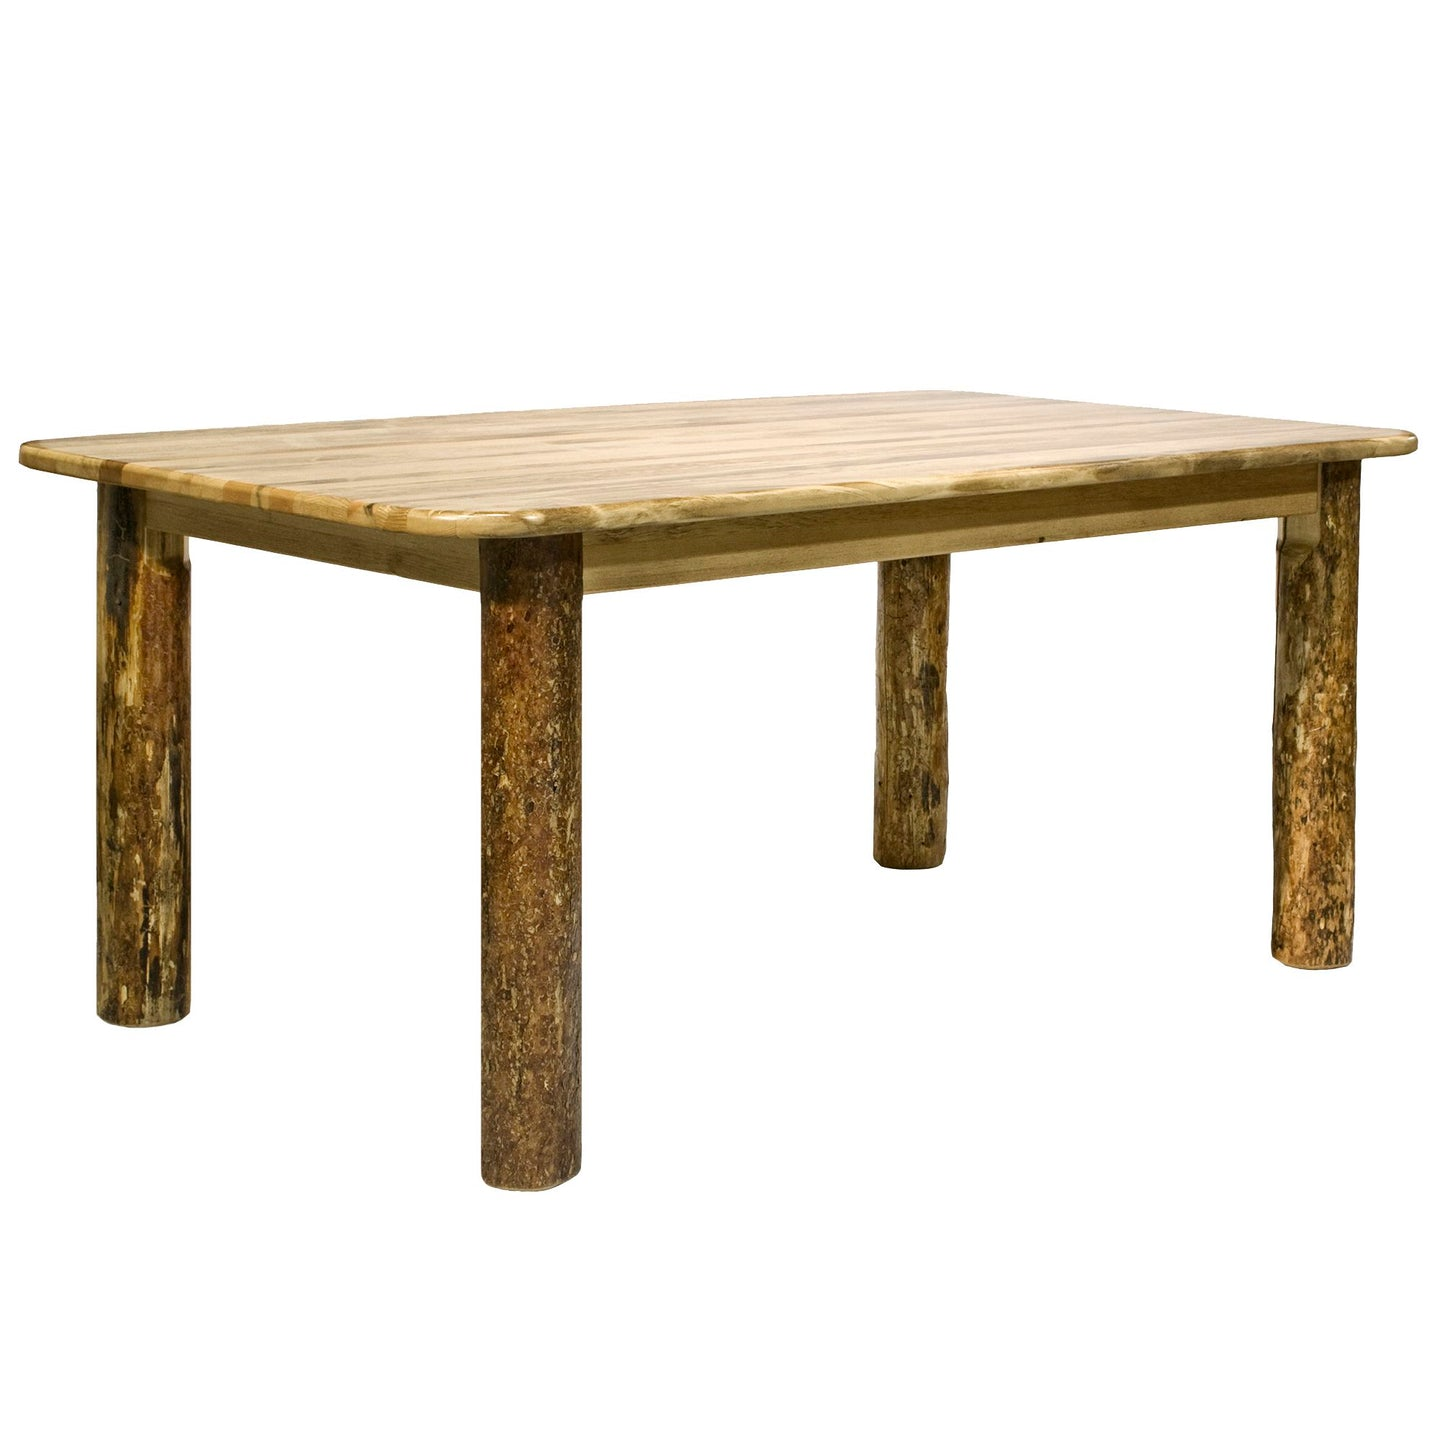 Glacier Country 4 Post Rustic Dining Table